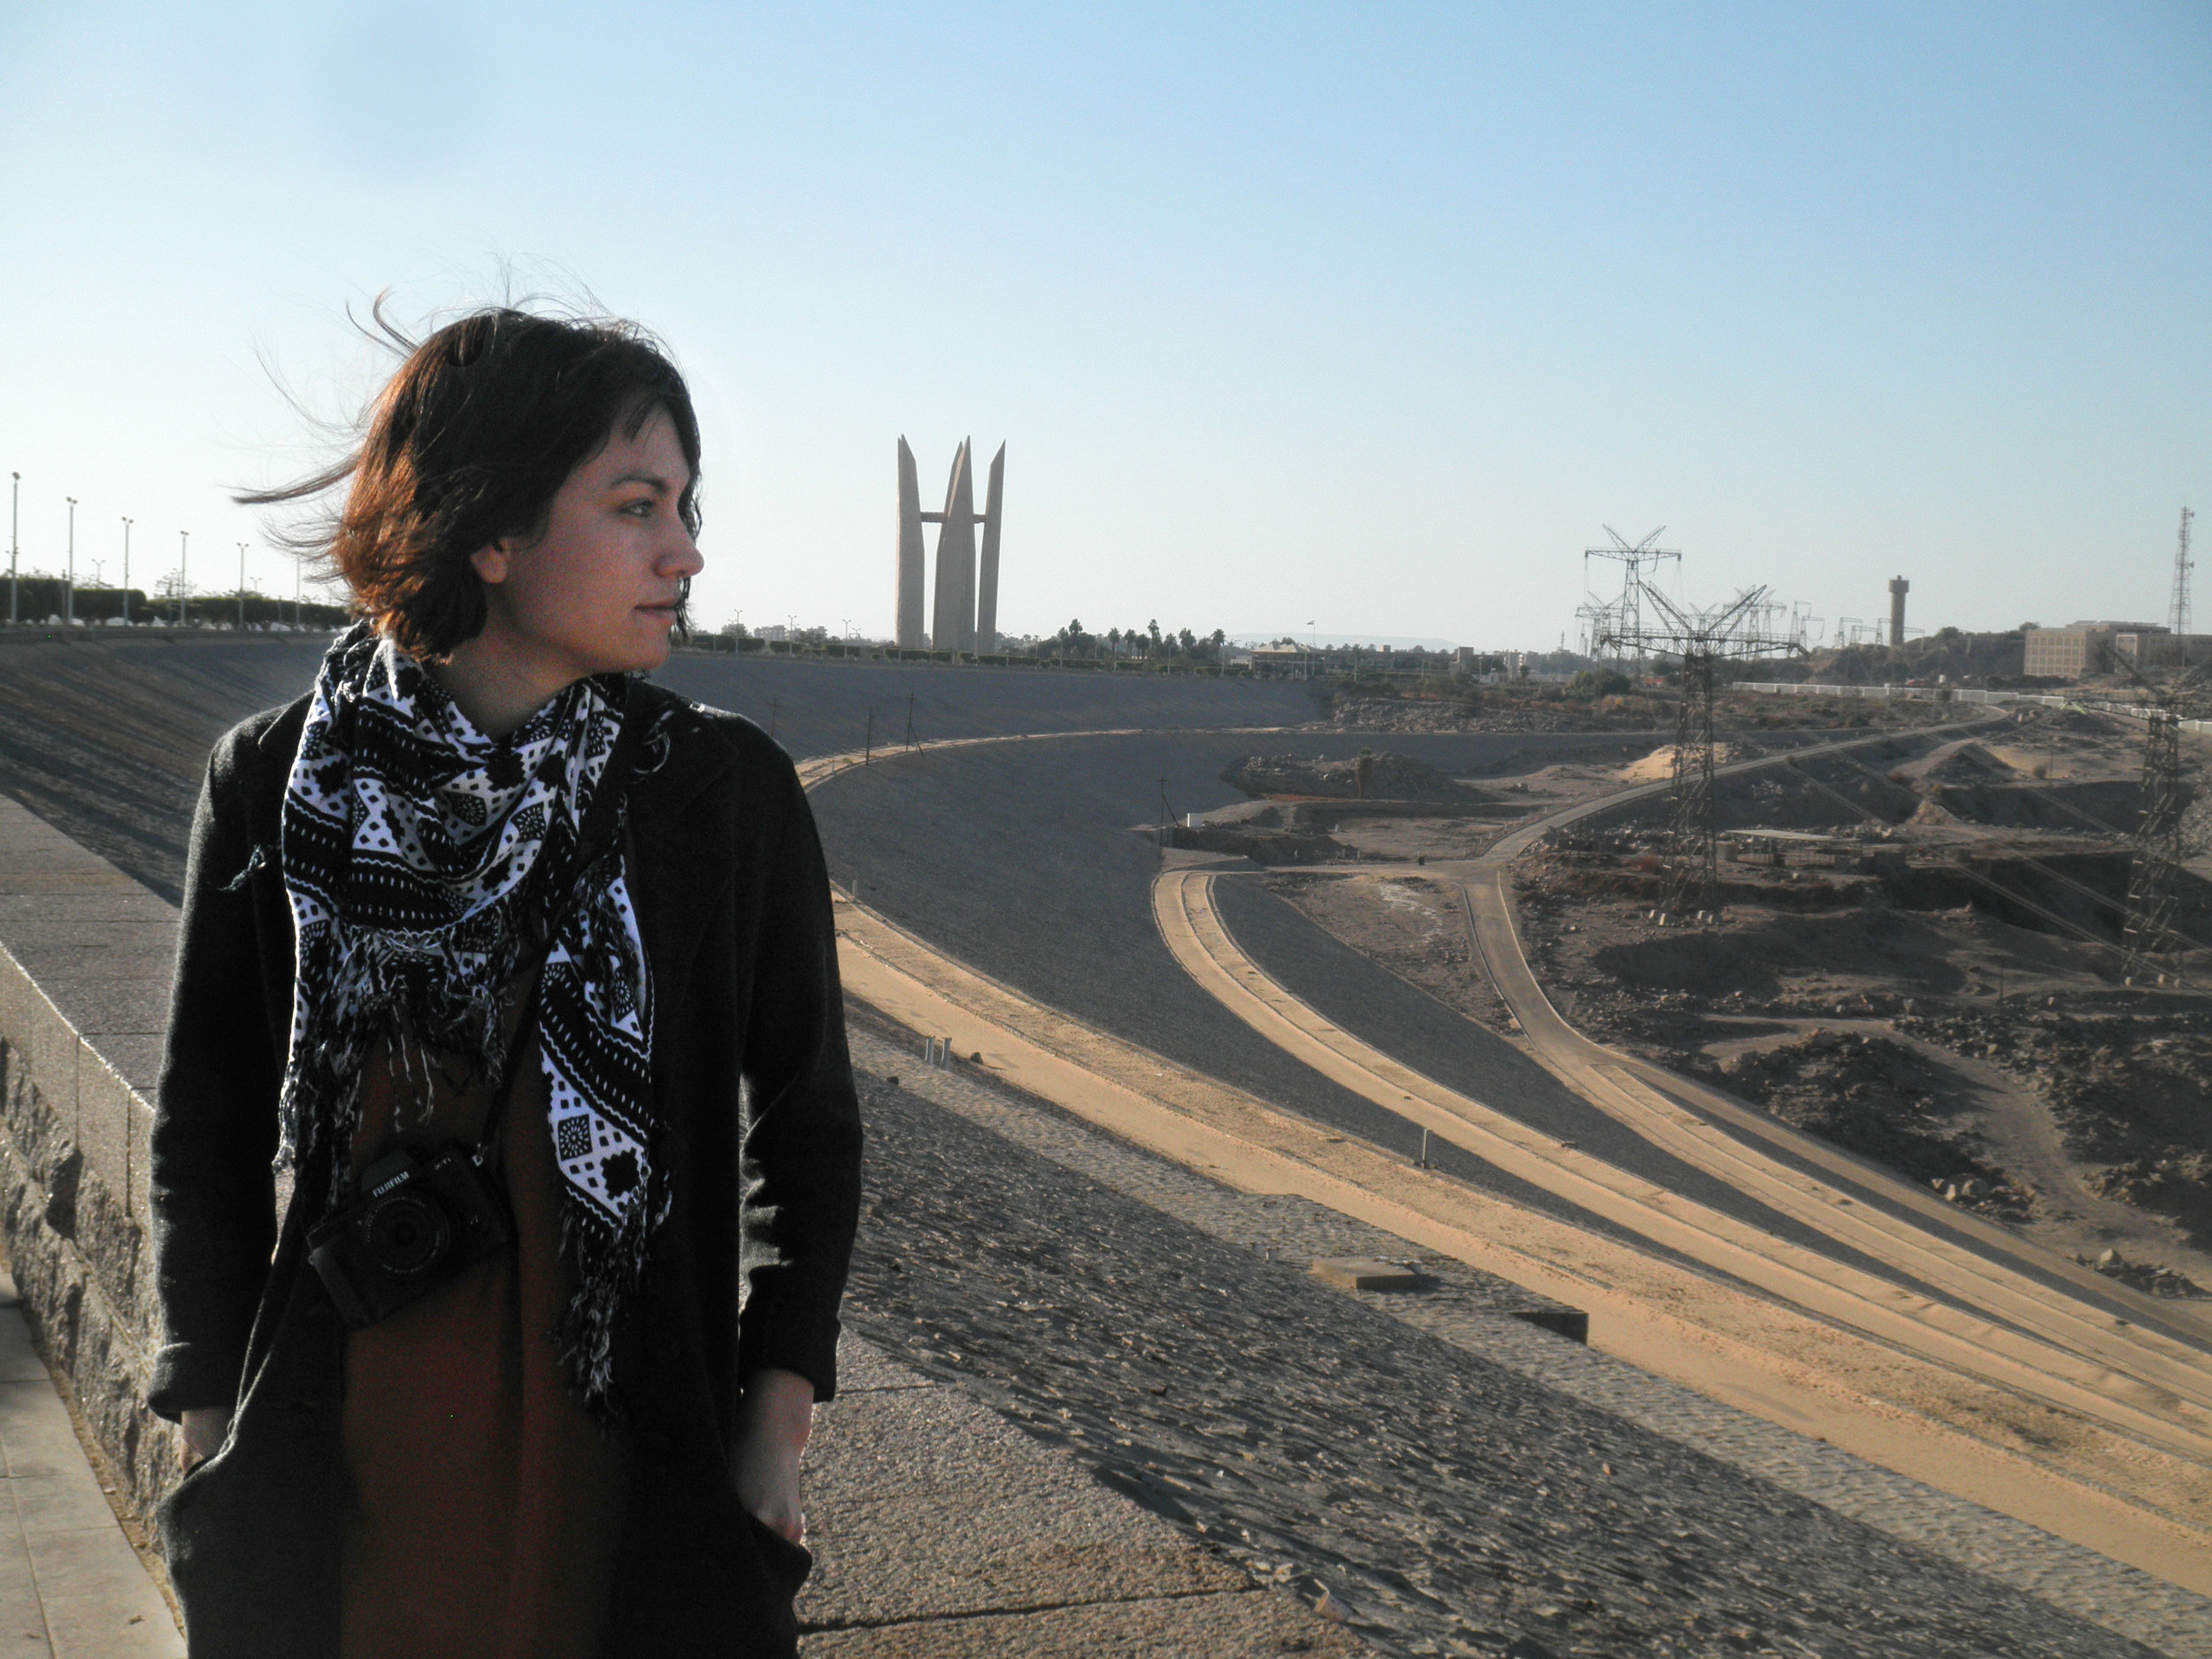 Isabel on a personal trip to see Aswan Dam, Egypt, 2018.